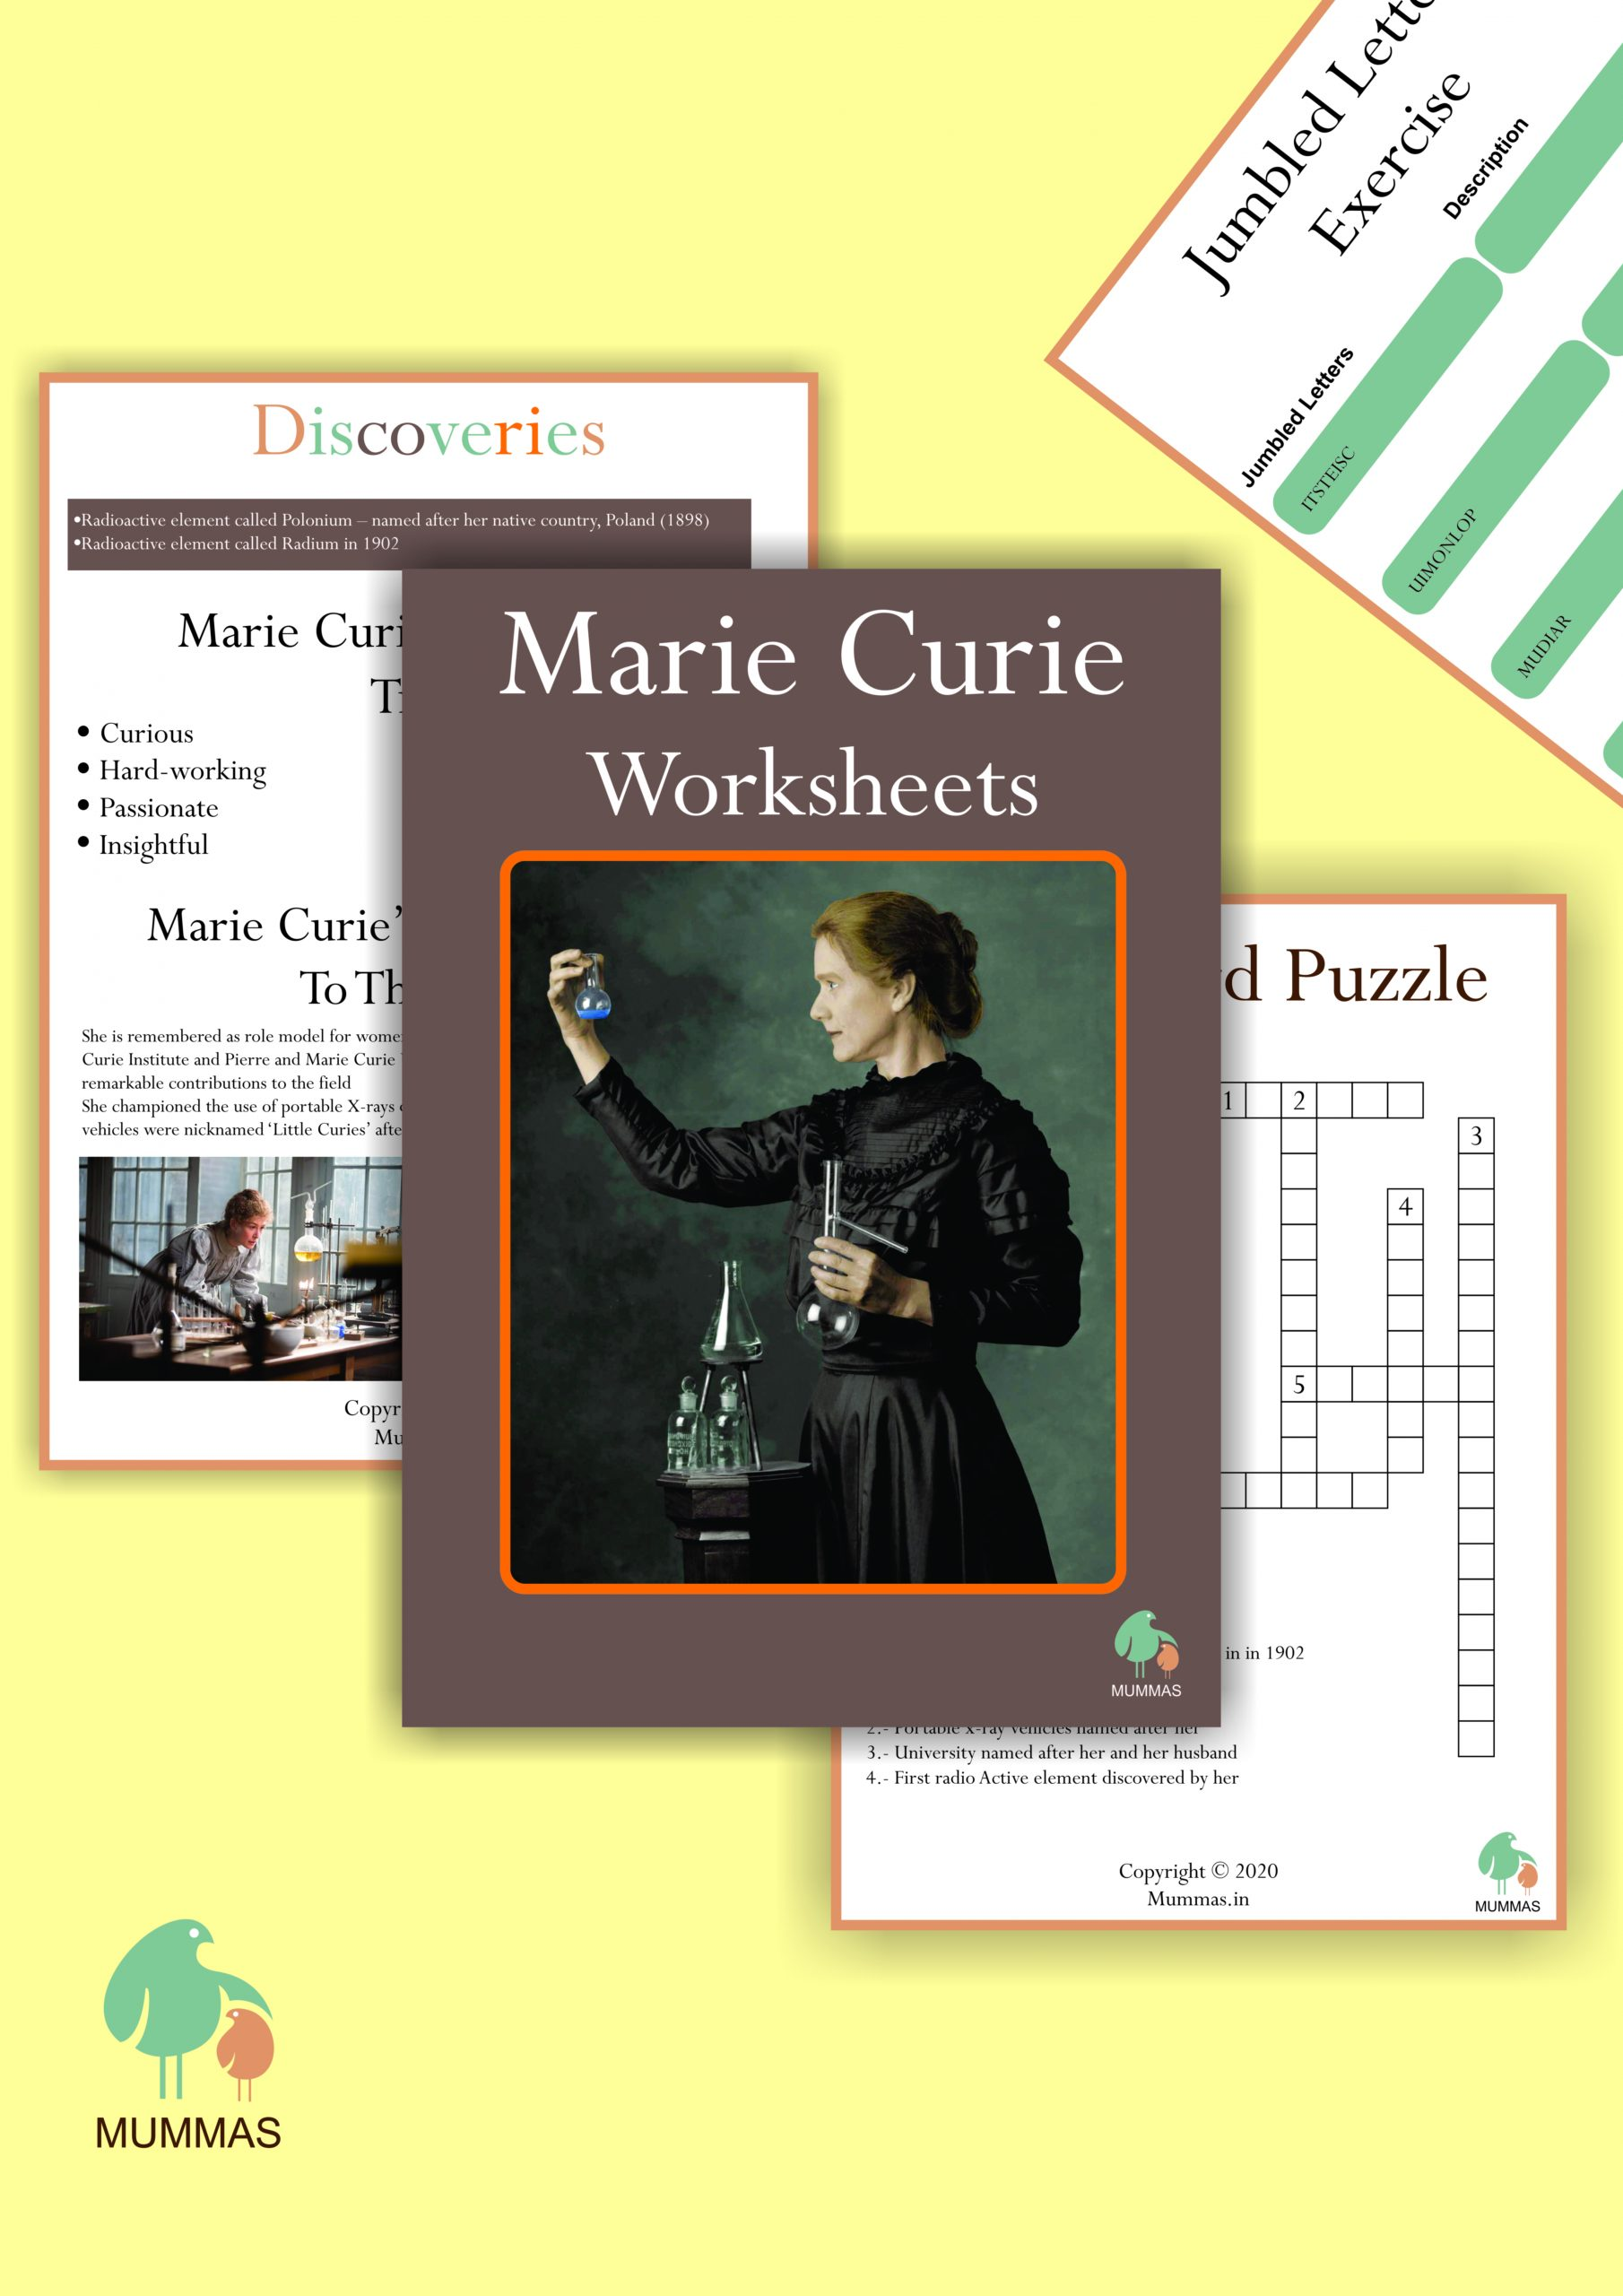 Marie Curie Work Sheet For Kids 8 Years